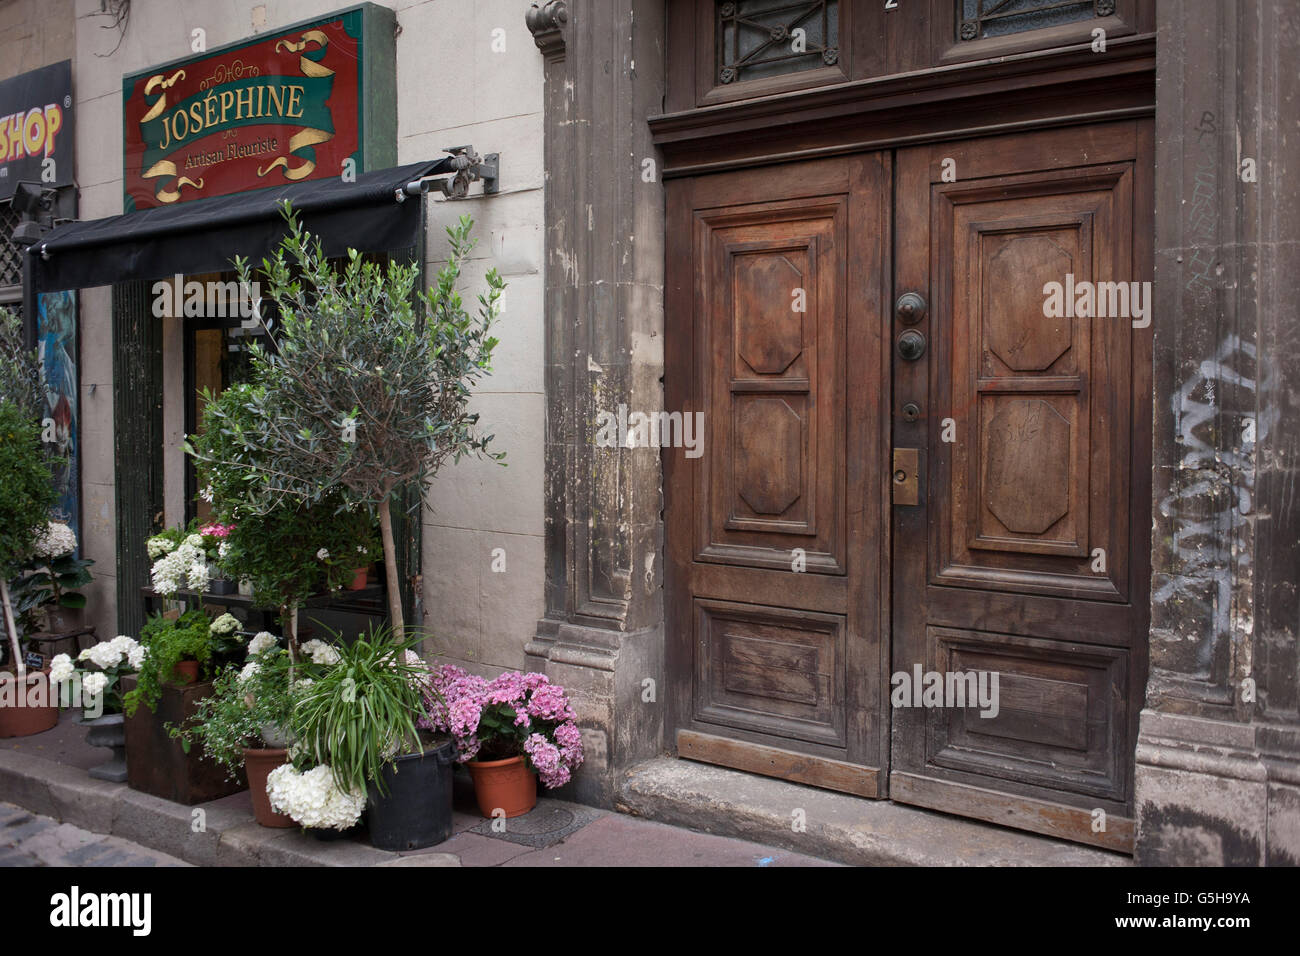 Florist Business And Old Doorway In A Side Street Of Montpellier, South Of  France.